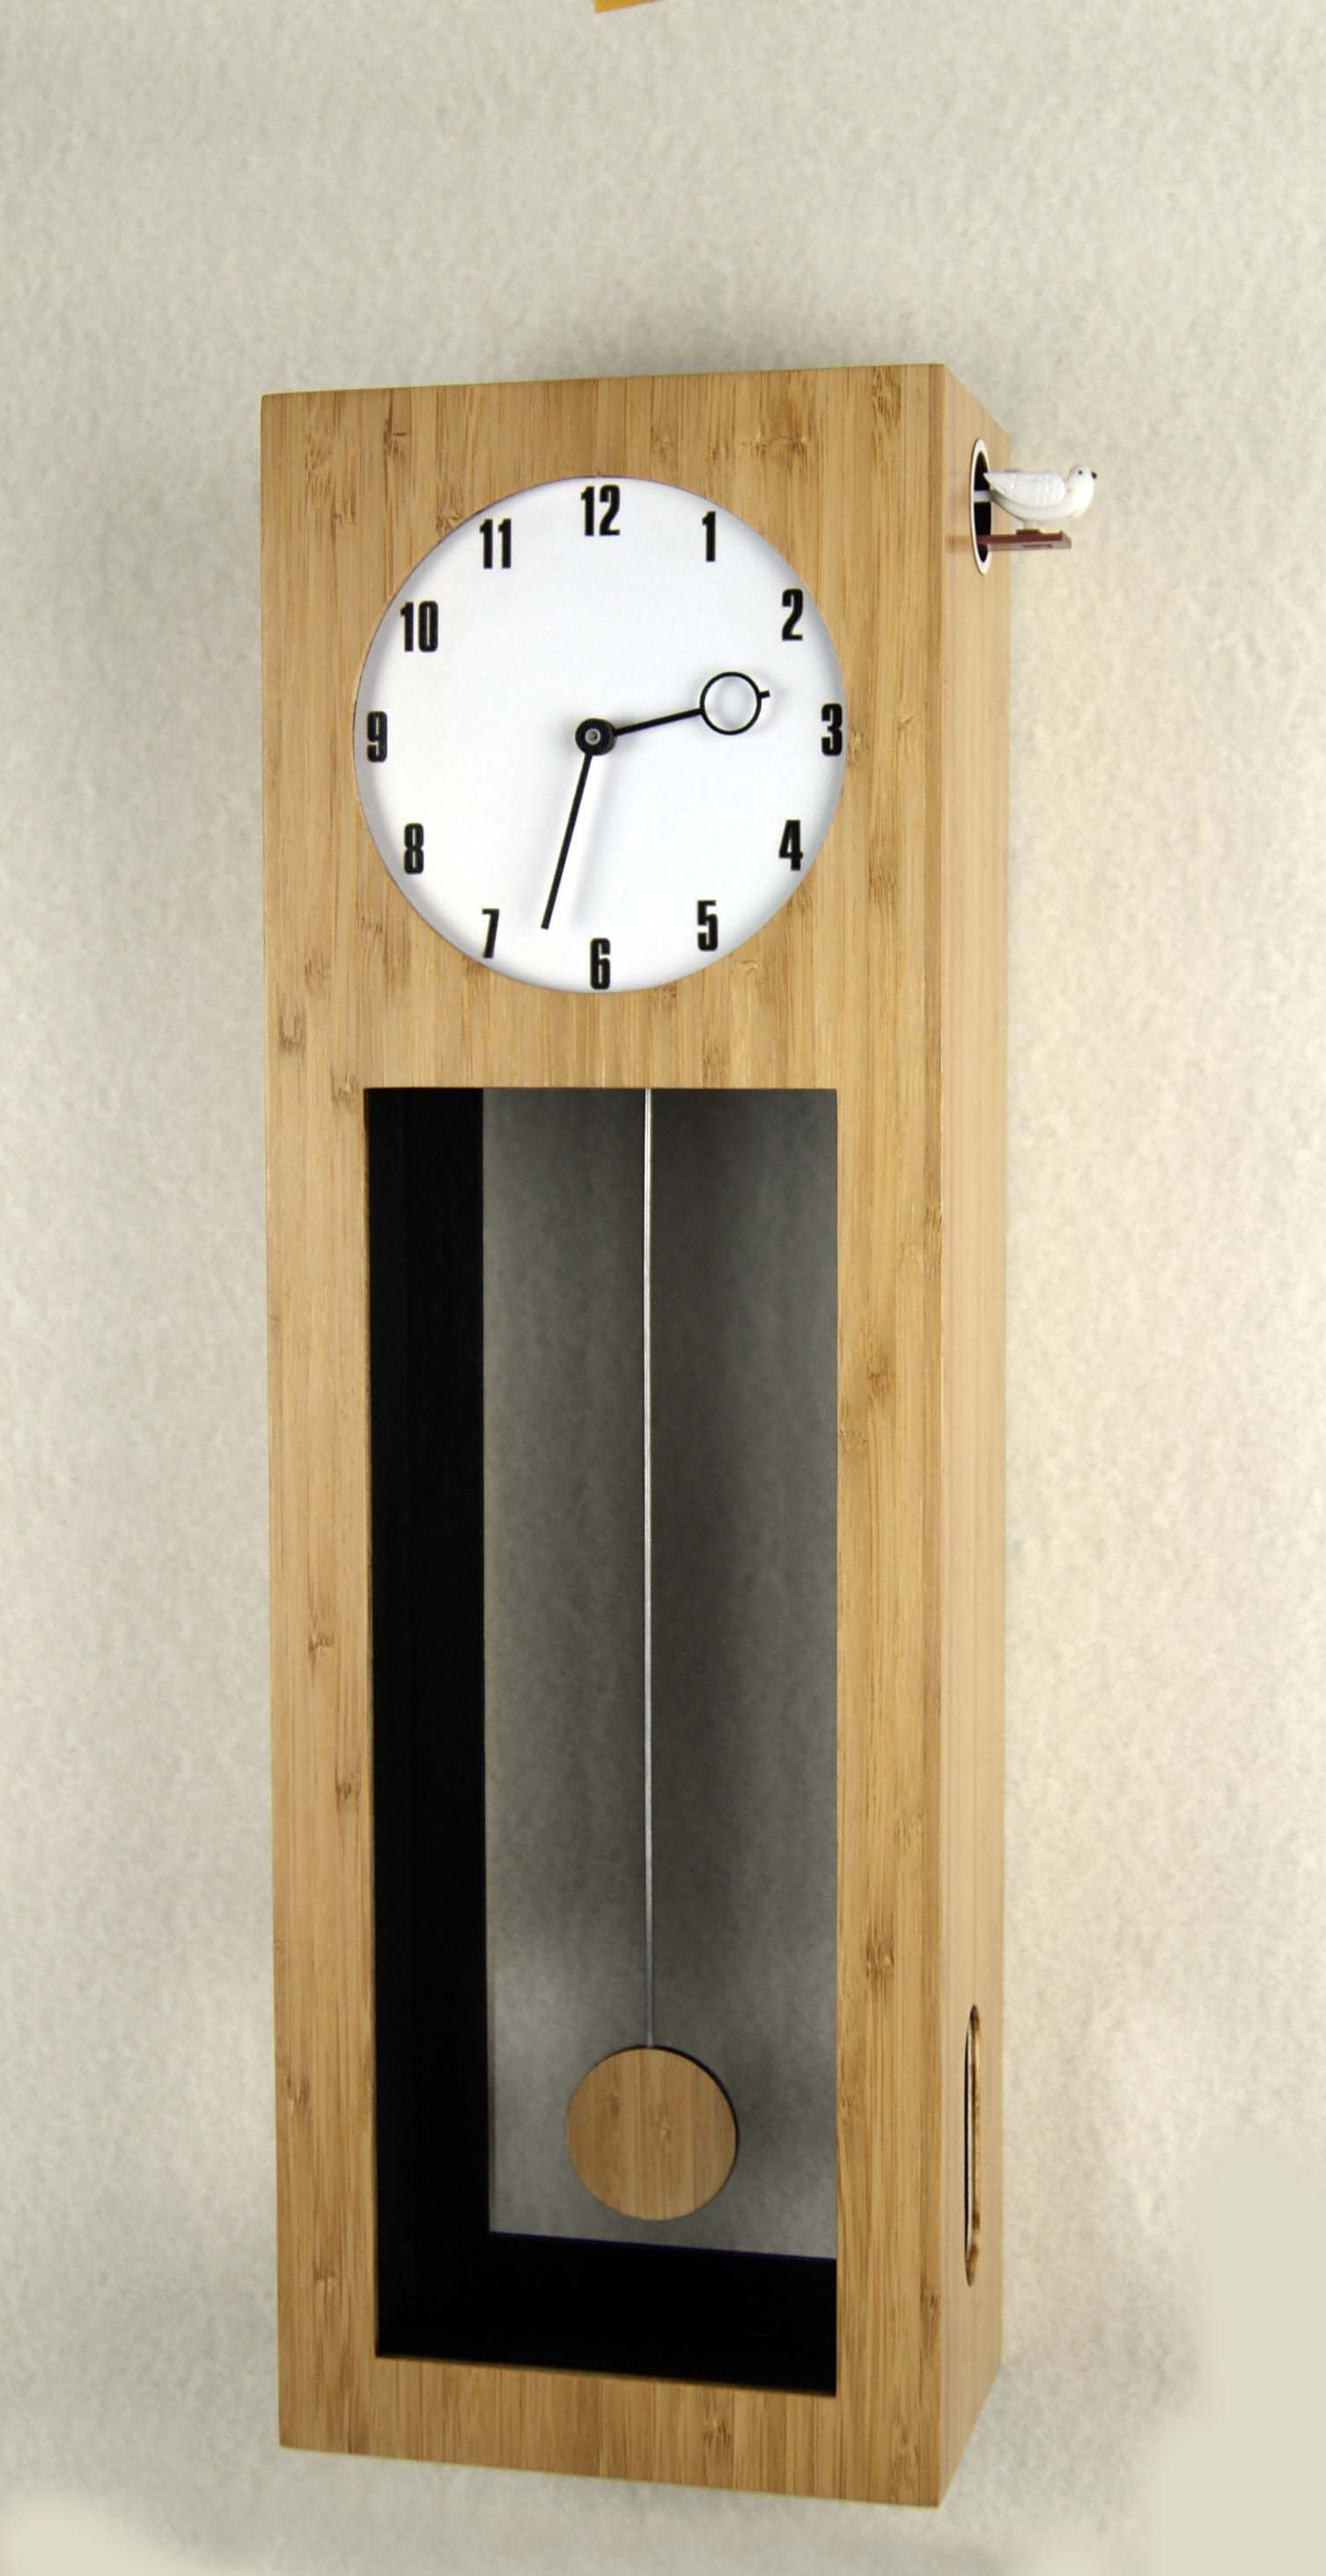 Bamboo Cuckoo Clock Height 19 6 Inches Etsy In 2020 Clock Cuckoo Clock Cuckoo